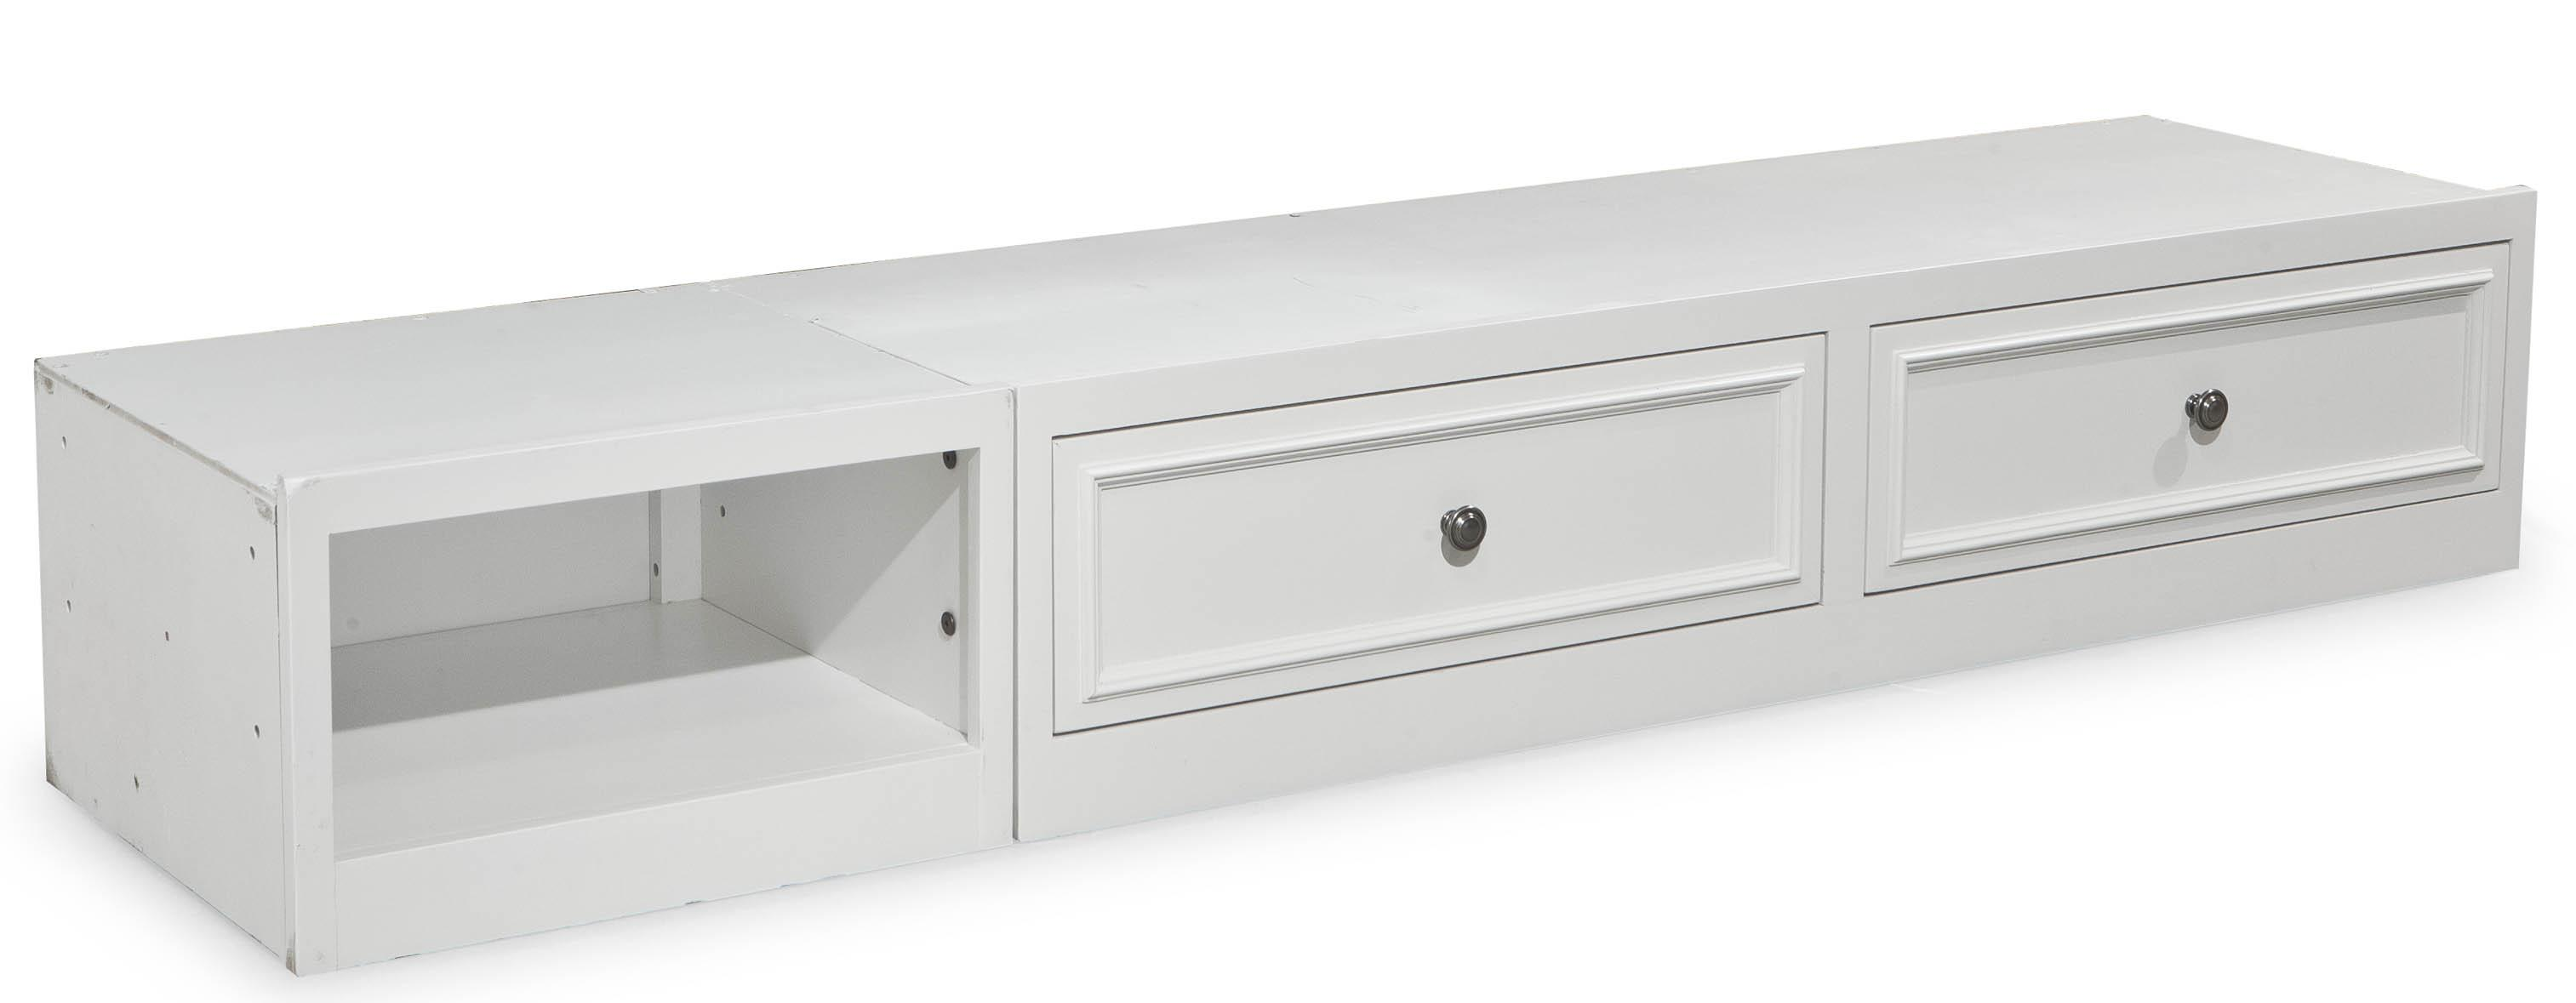 Legacy Classic Kids Madison 2830 9300 Underbed Storage Unit With 2 Drawers And 1 Open